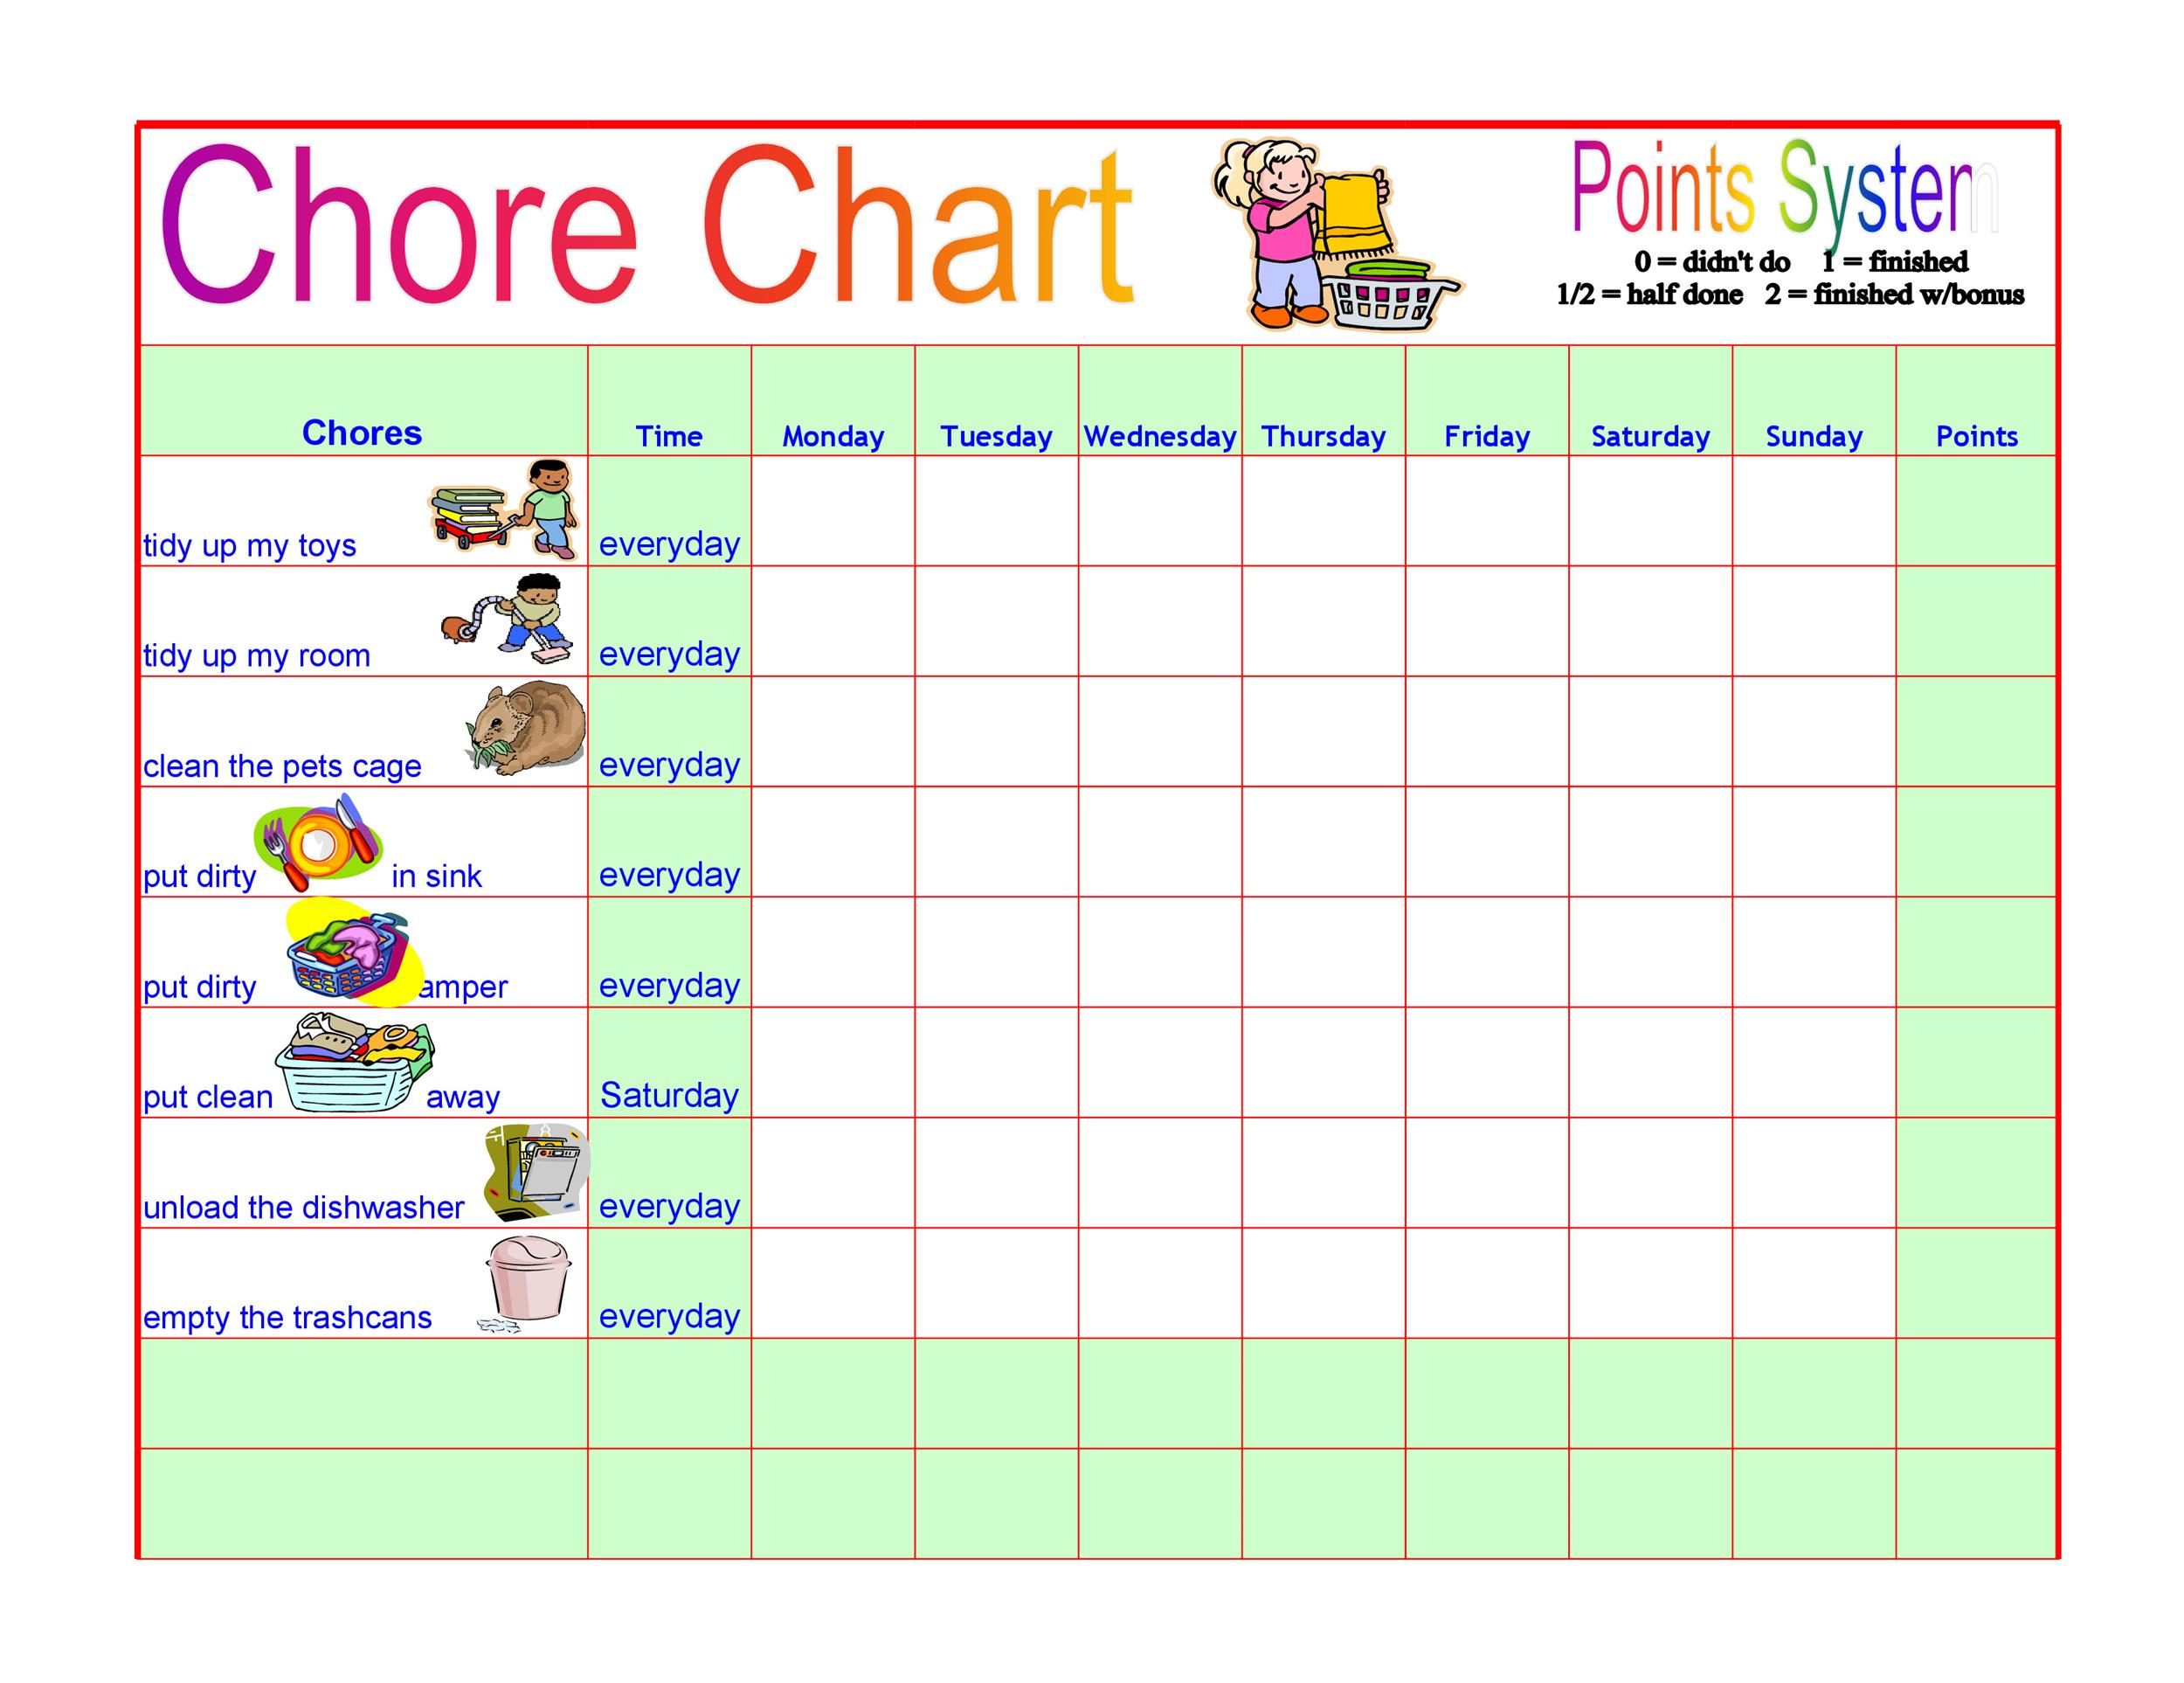 picture about Chore Chart Printable Free titled 43 Absolutely free Chore Chart Templates for Little ones ᐅ Template Lab